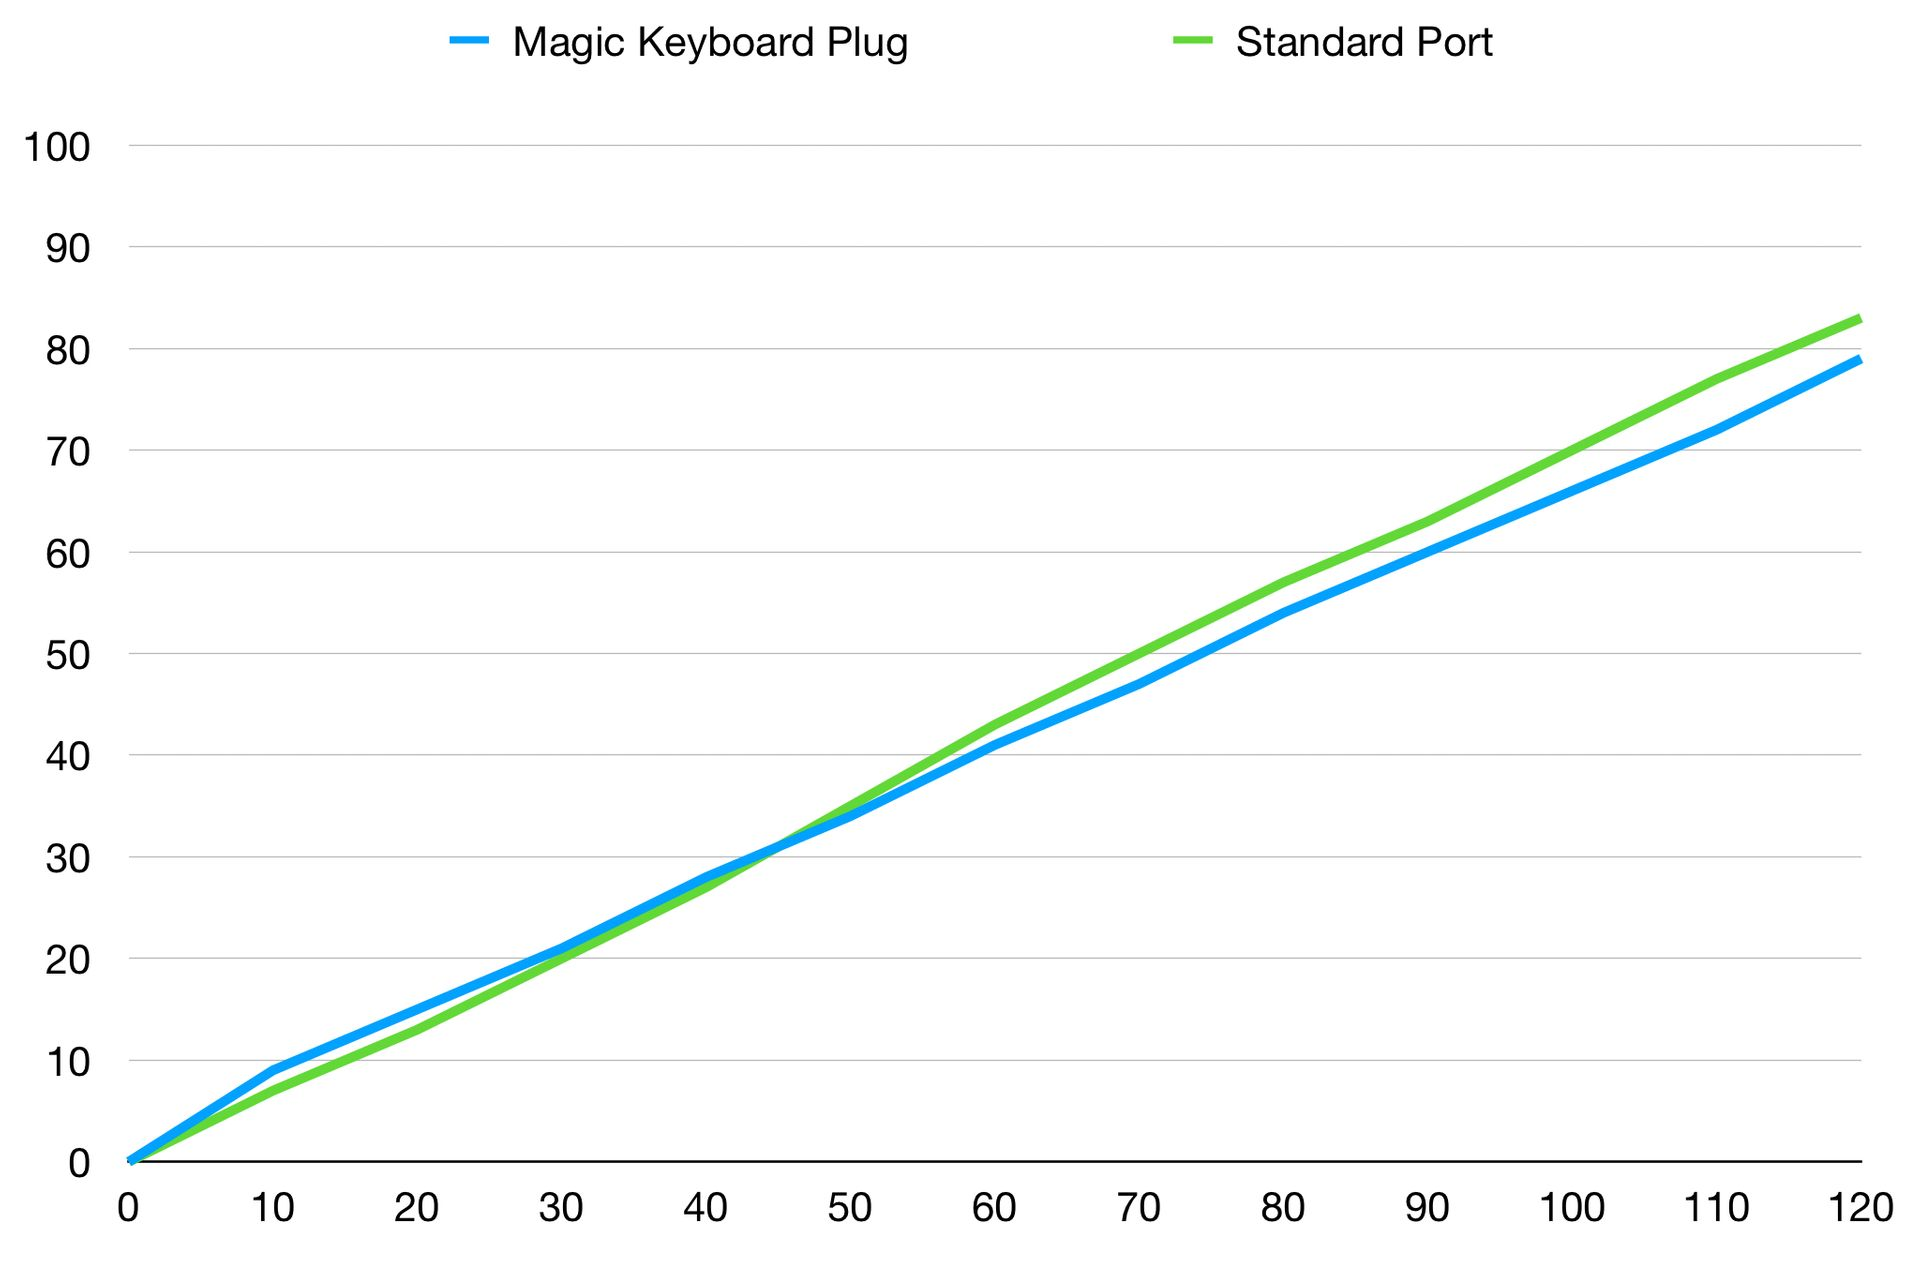 How Fast Does the USB-C Plug on the Magic Keyboard Charge the iPad Pro?